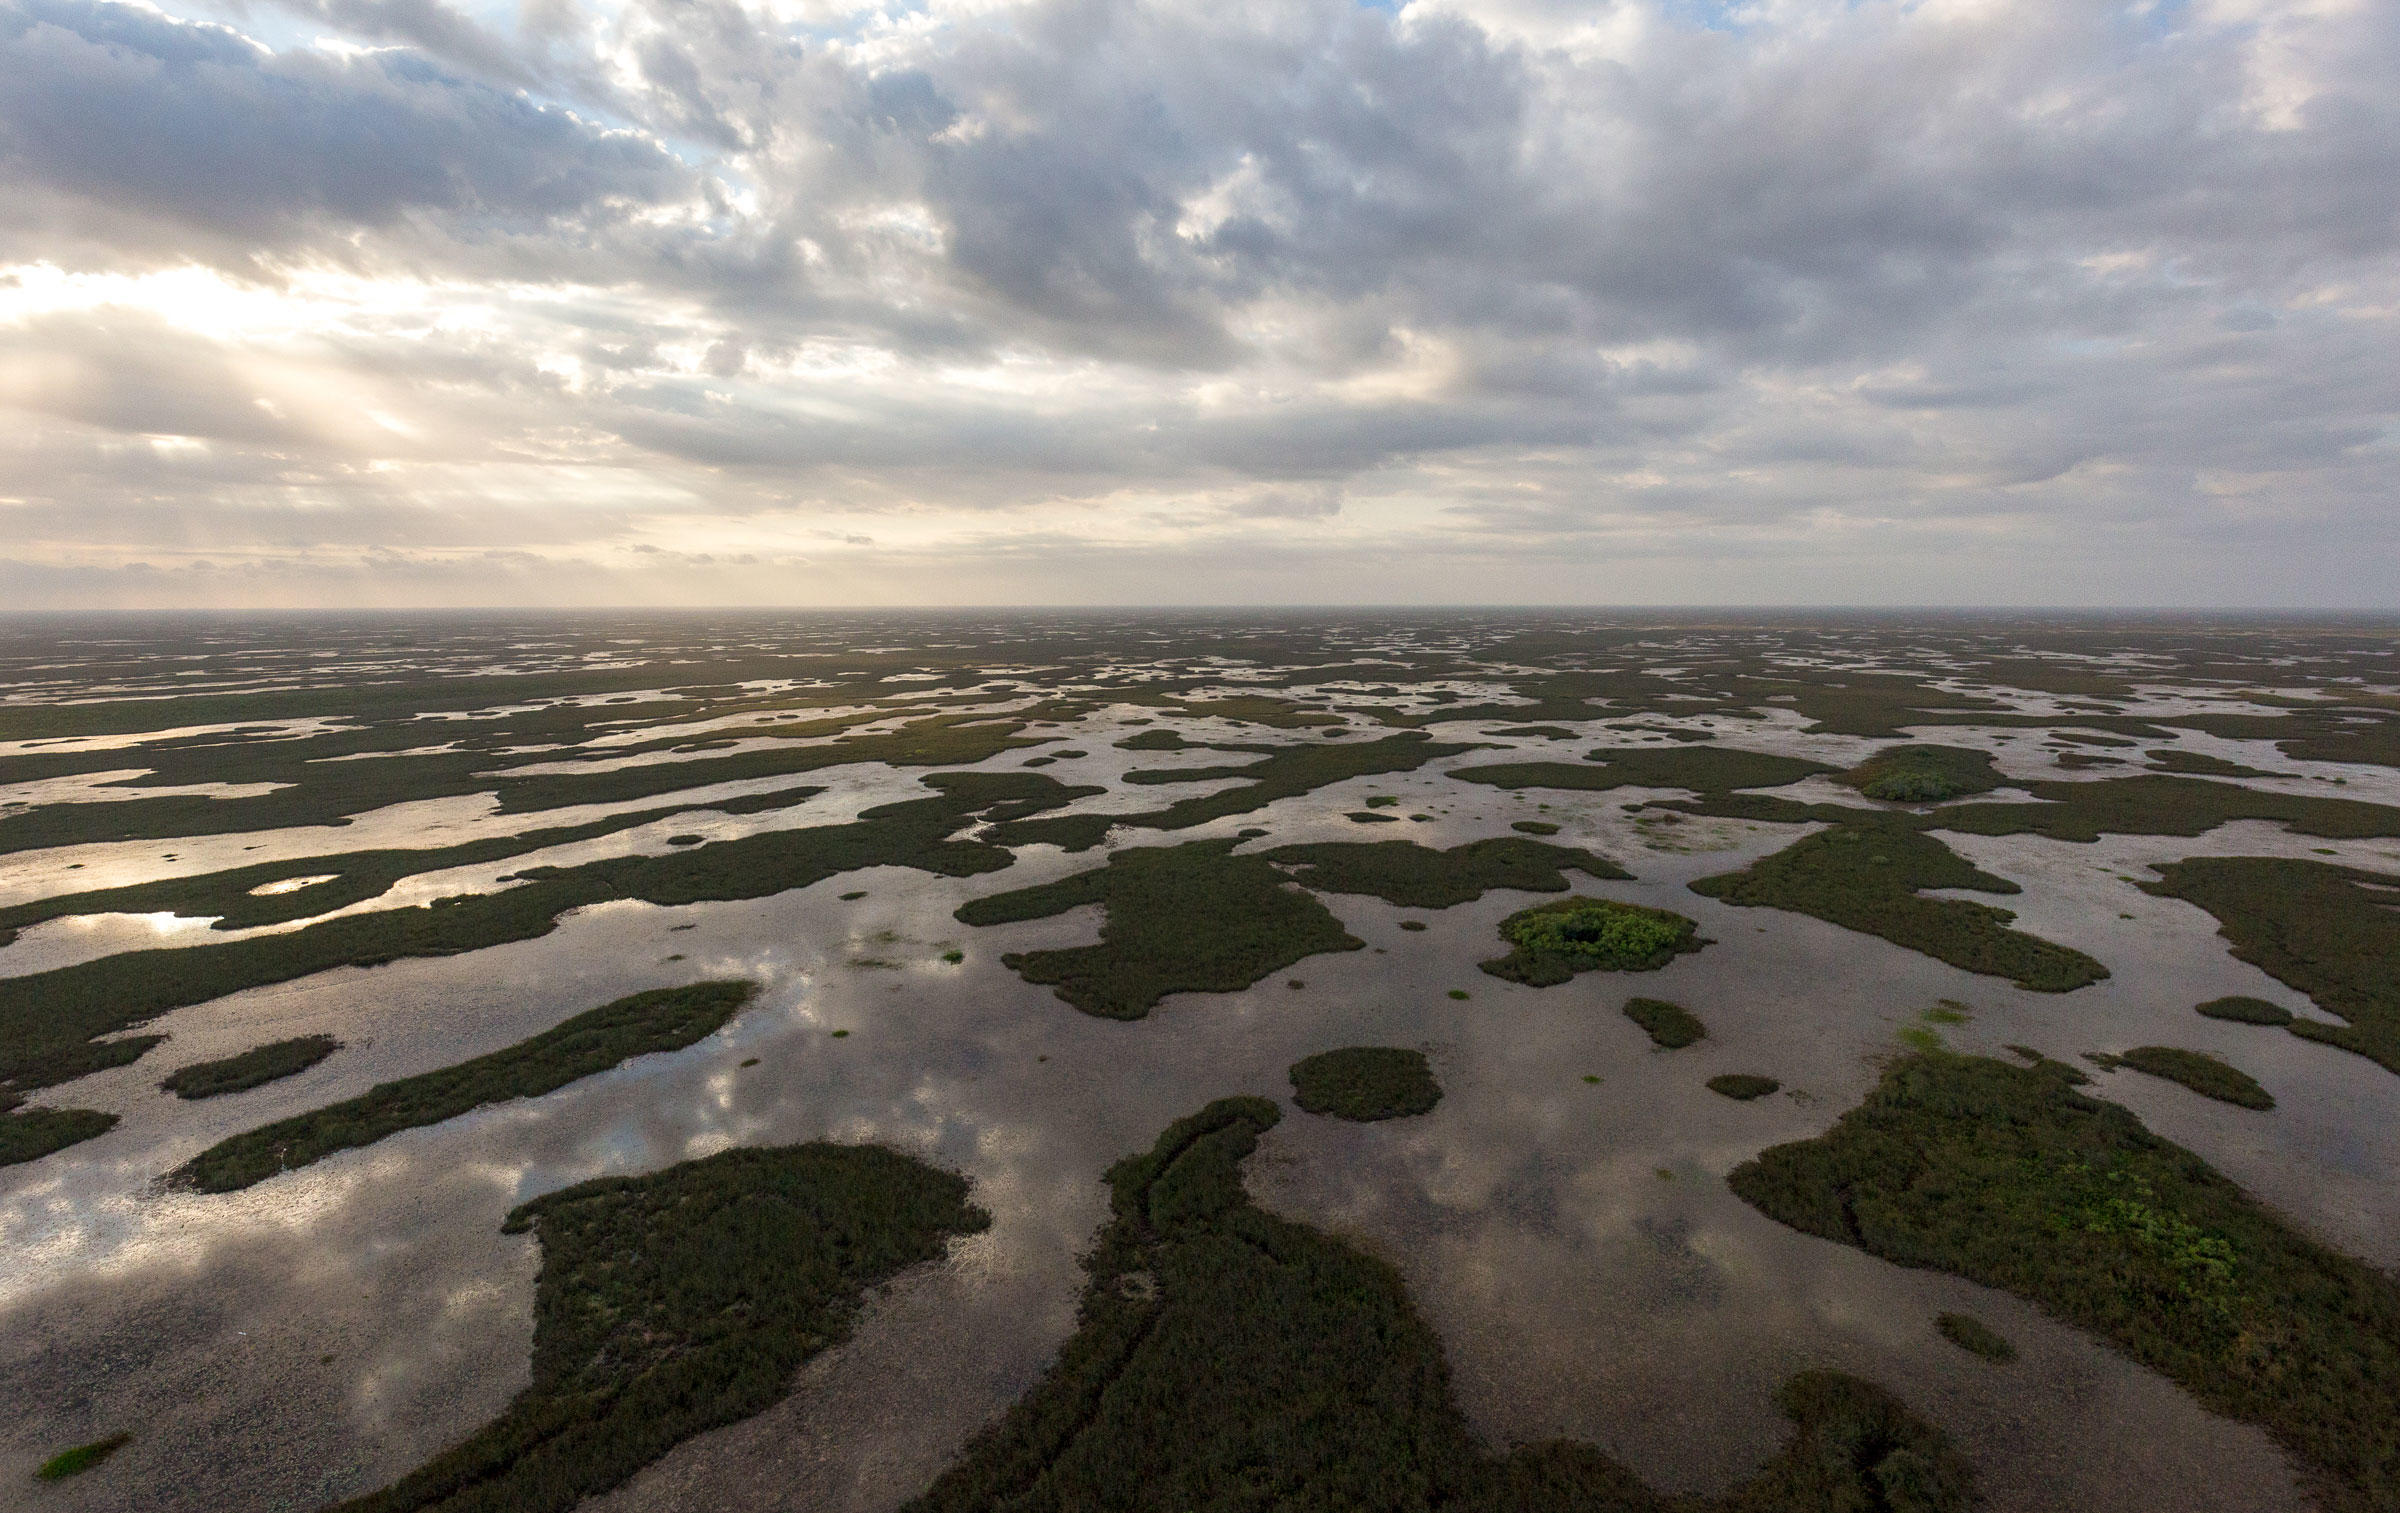 The proposal could cut protections for Everglades wetlands that, while often dry, are essential for wading birds. Mac Stone